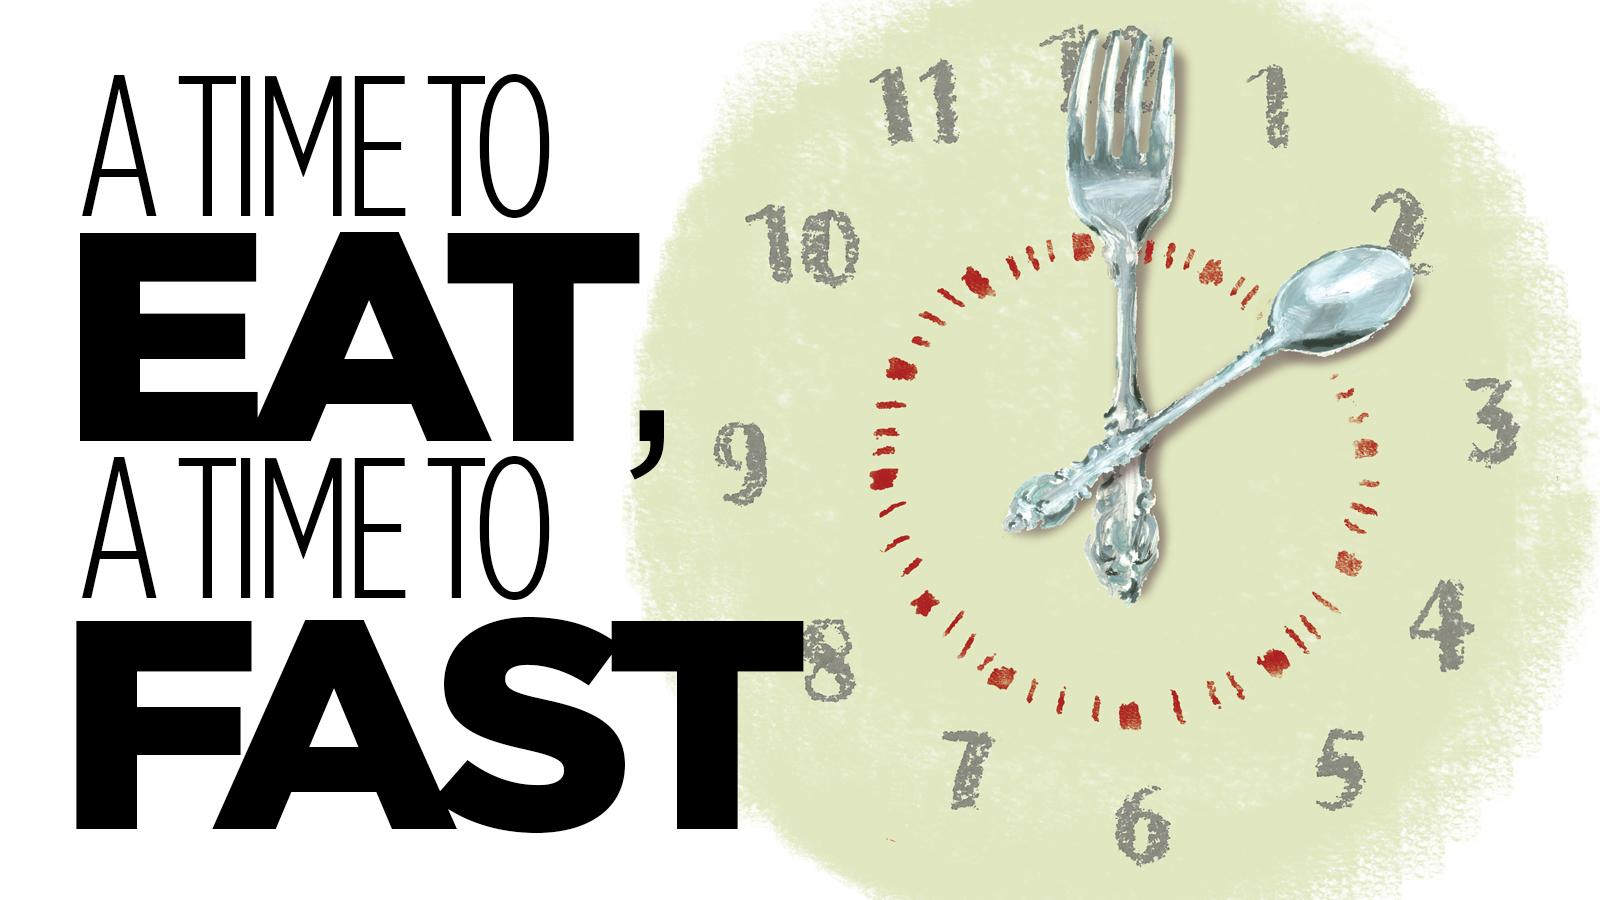 Intermittent fasting: A time to eat, a time to fast | The ...